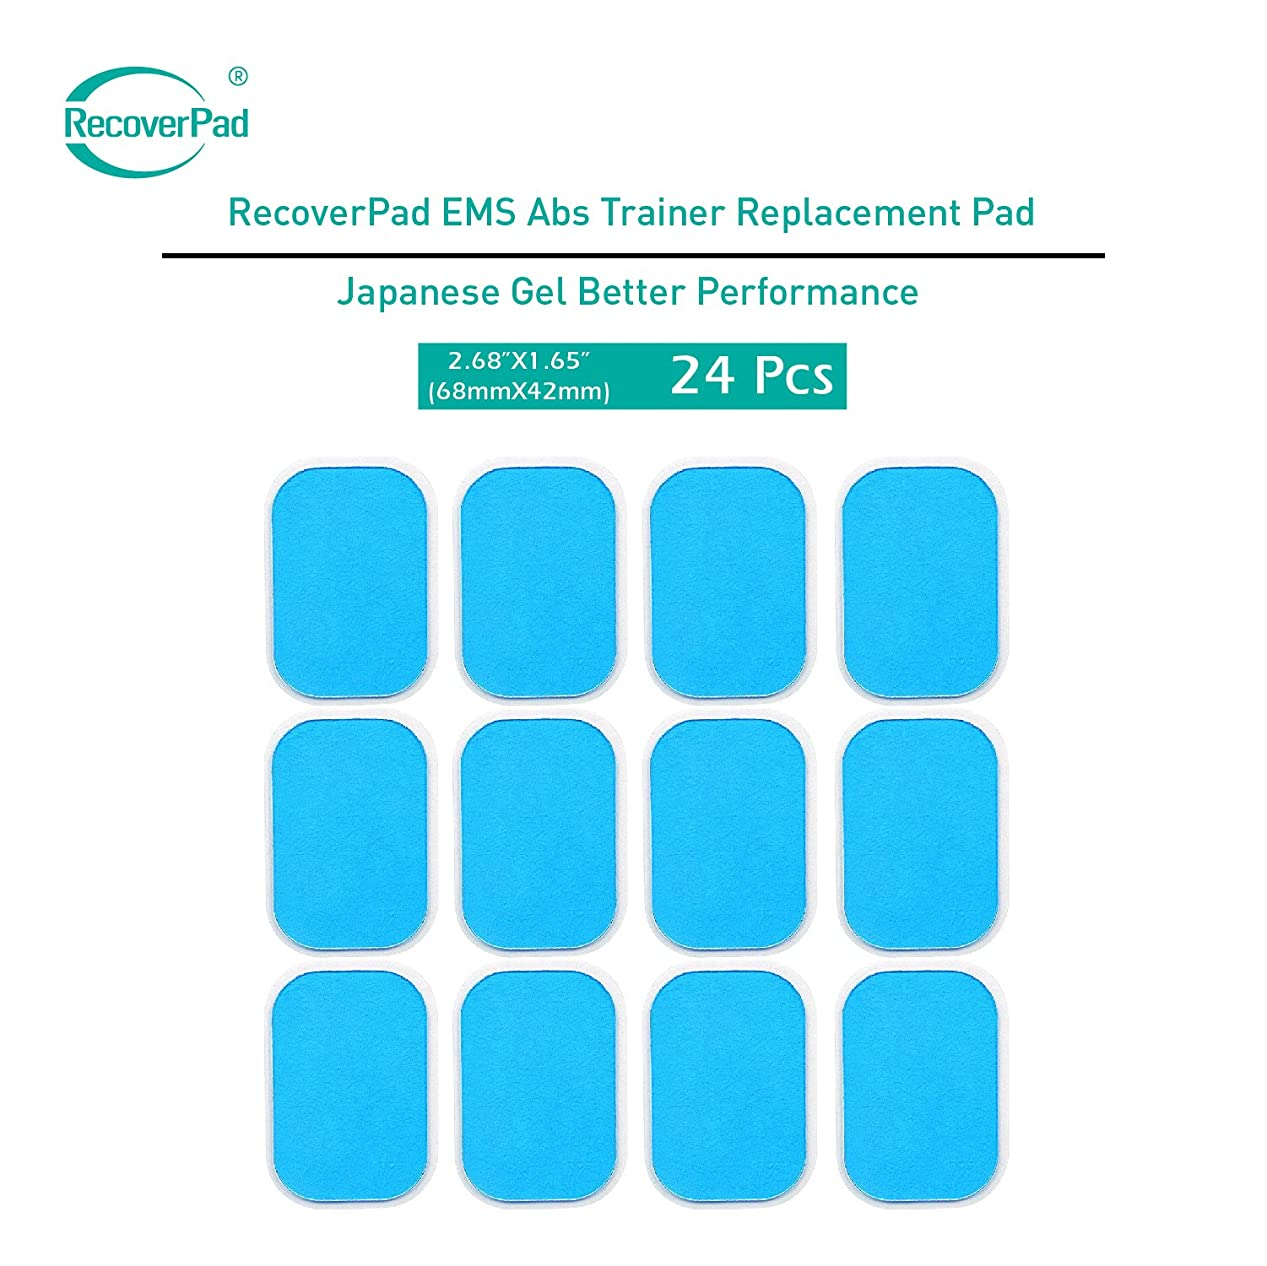 鉛フィクション不道徳RecoverPad 24 Pads of EMS Abs Trainer Replacement Japanese Made Gel Sheet for Muscle Abdominal Ab Trainer Stimulator Gel Pads Accessories